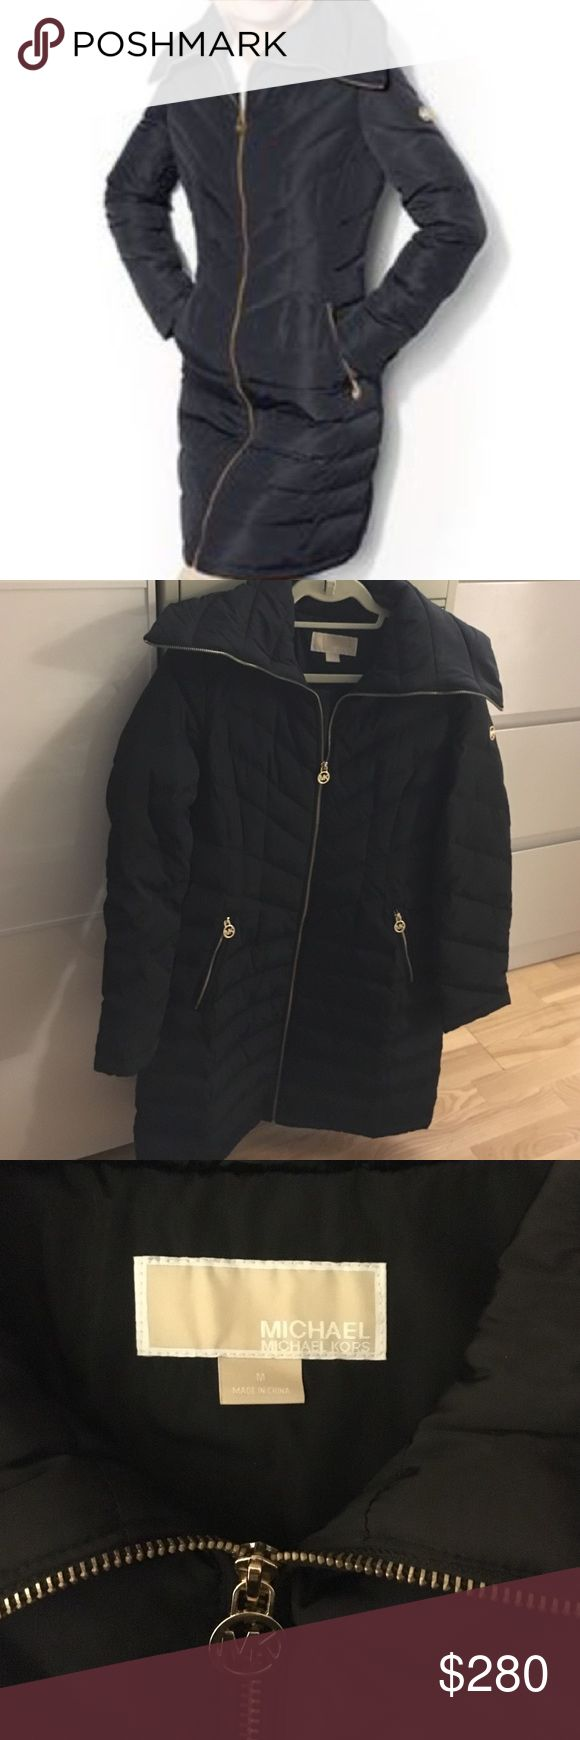 Michael Kors puffer coat NWOT Never worn! Was a gift but doesn't fit, lost the tags and no receipt  MICHAEL Michael Kors Jackets & Coats Puffers